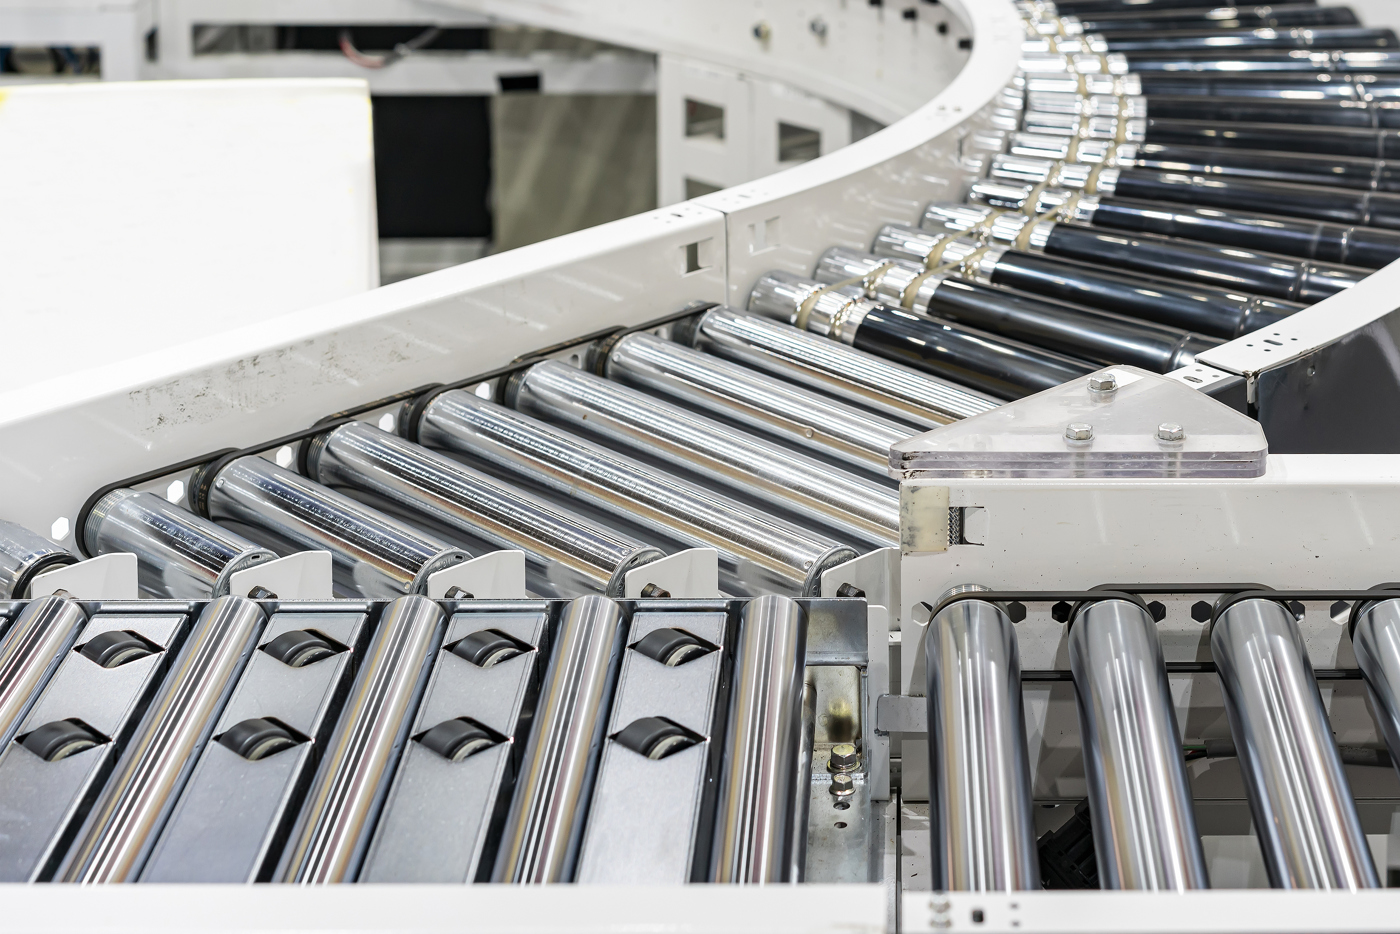 Factory stocks, assembly line stocks, industrial stocks, manufacturing stocks